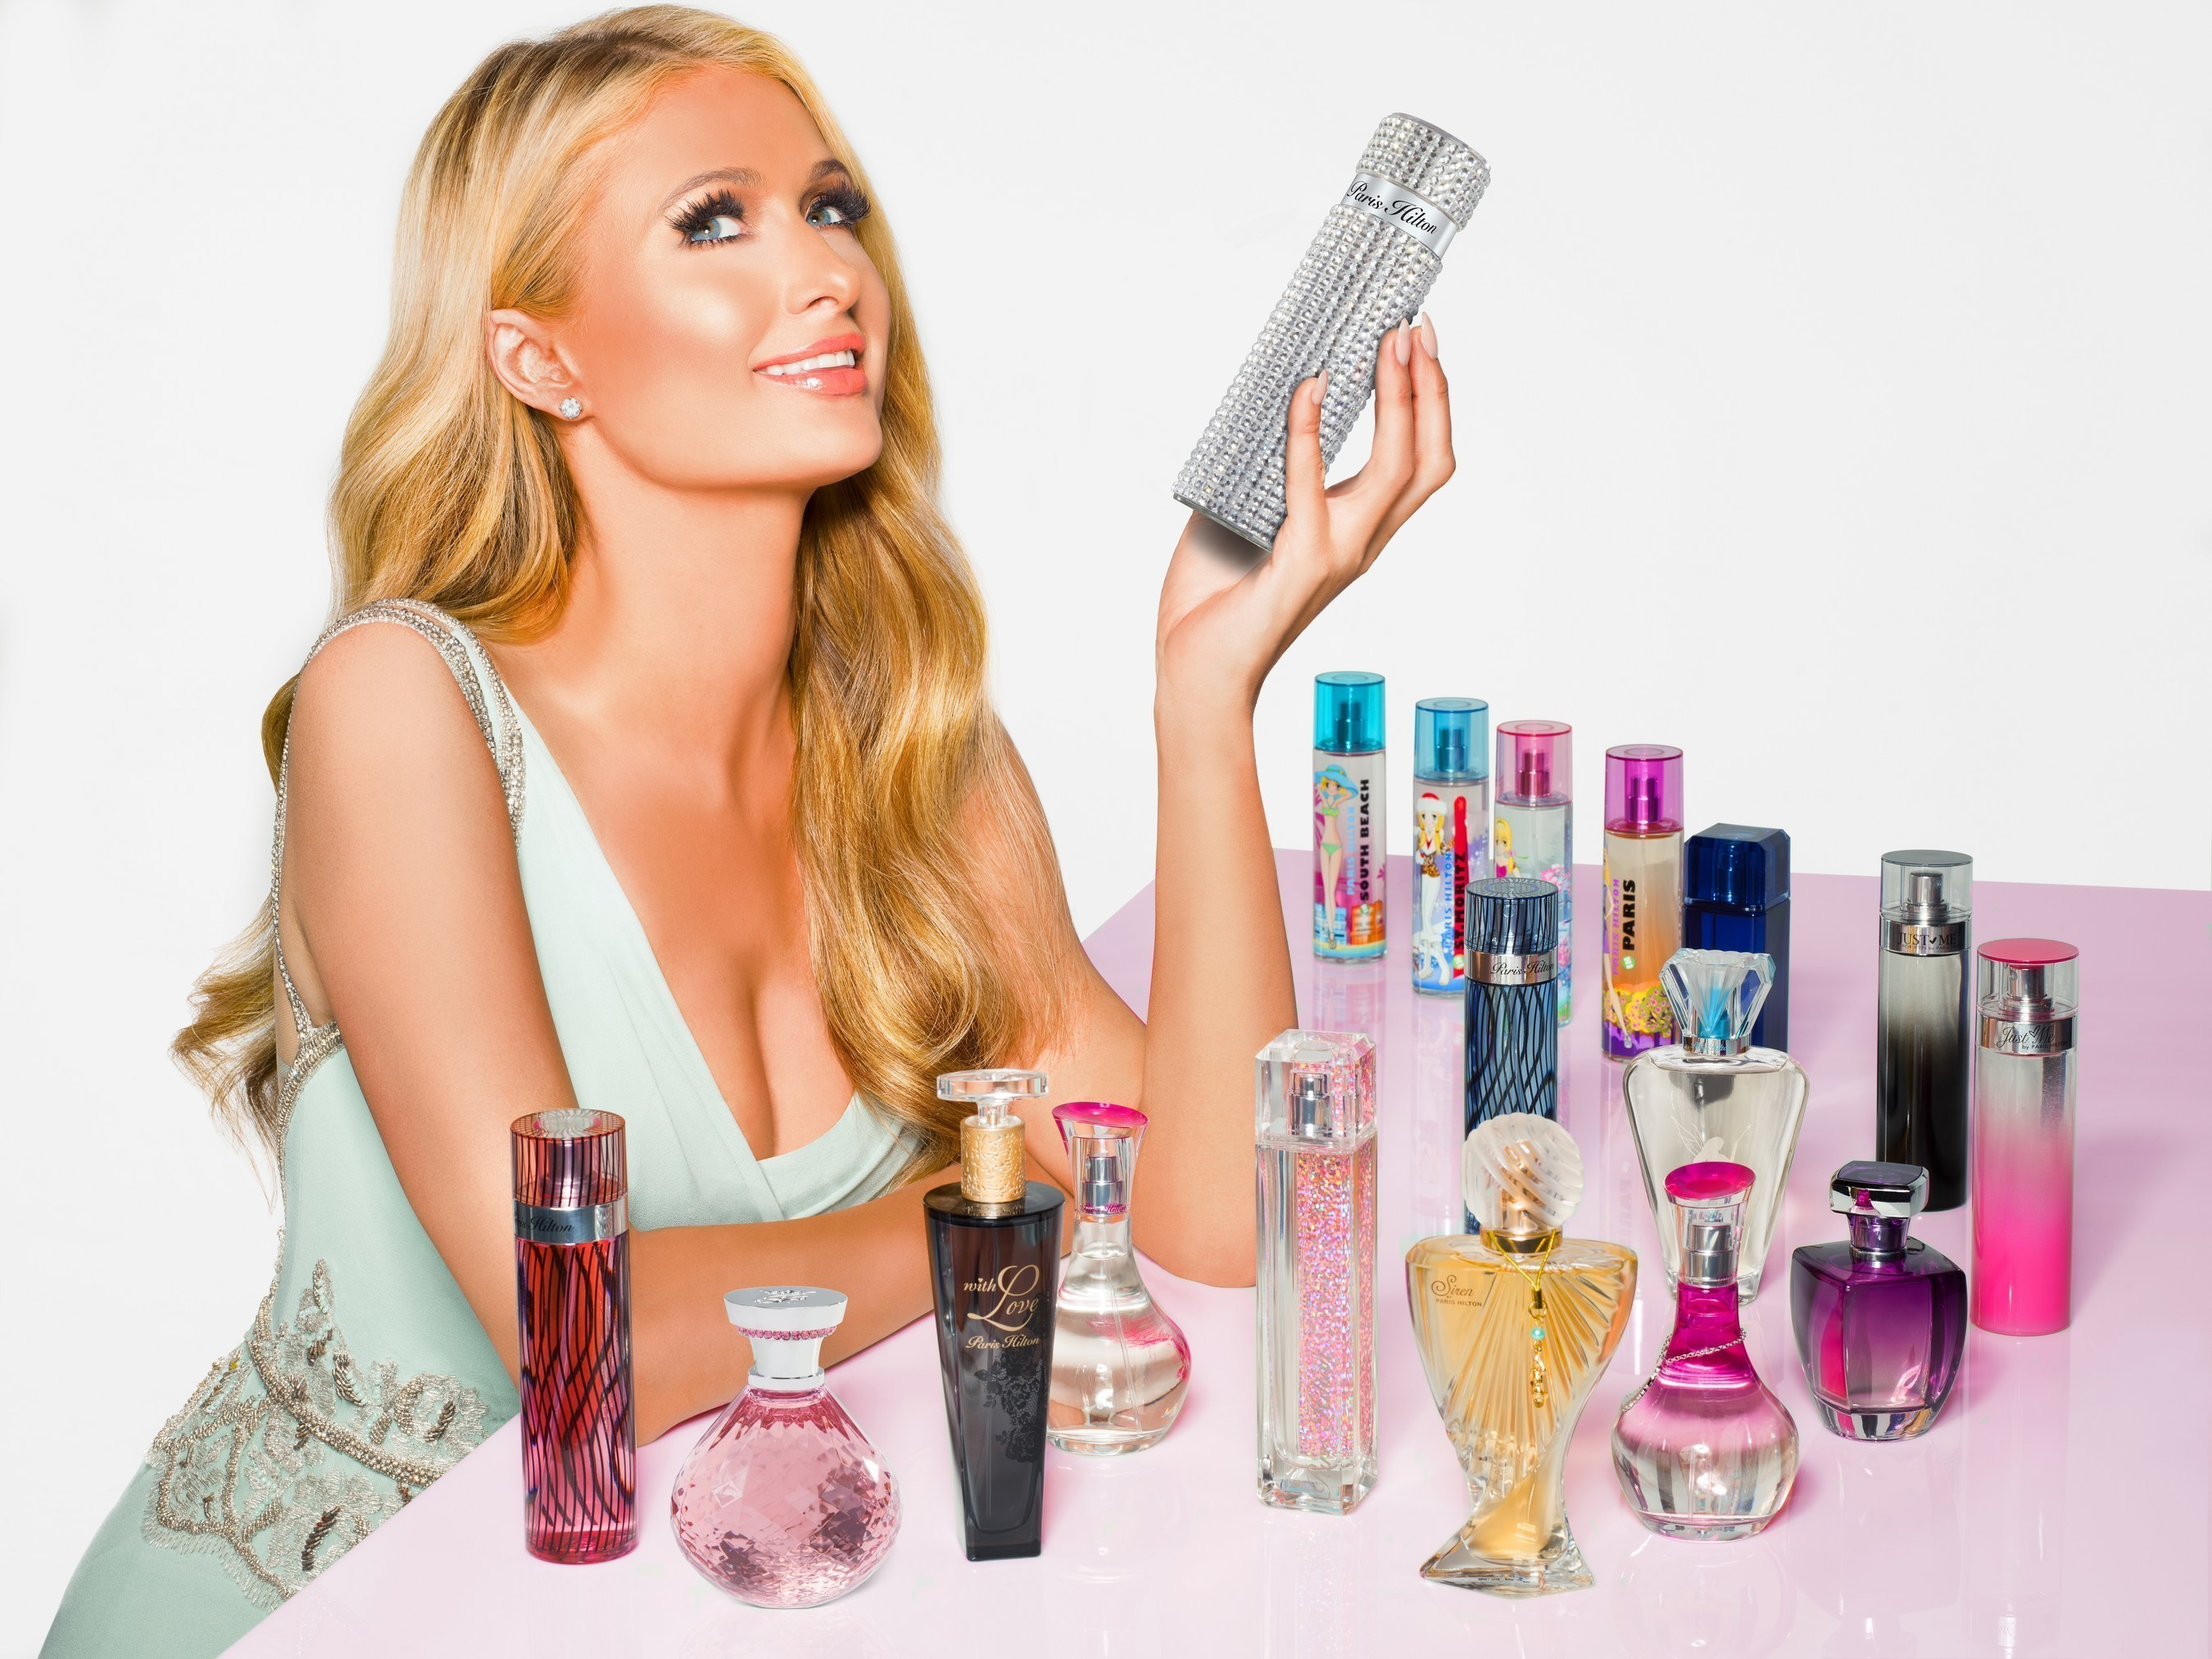 Paris Hilton with her 18 fragrances from her collection.